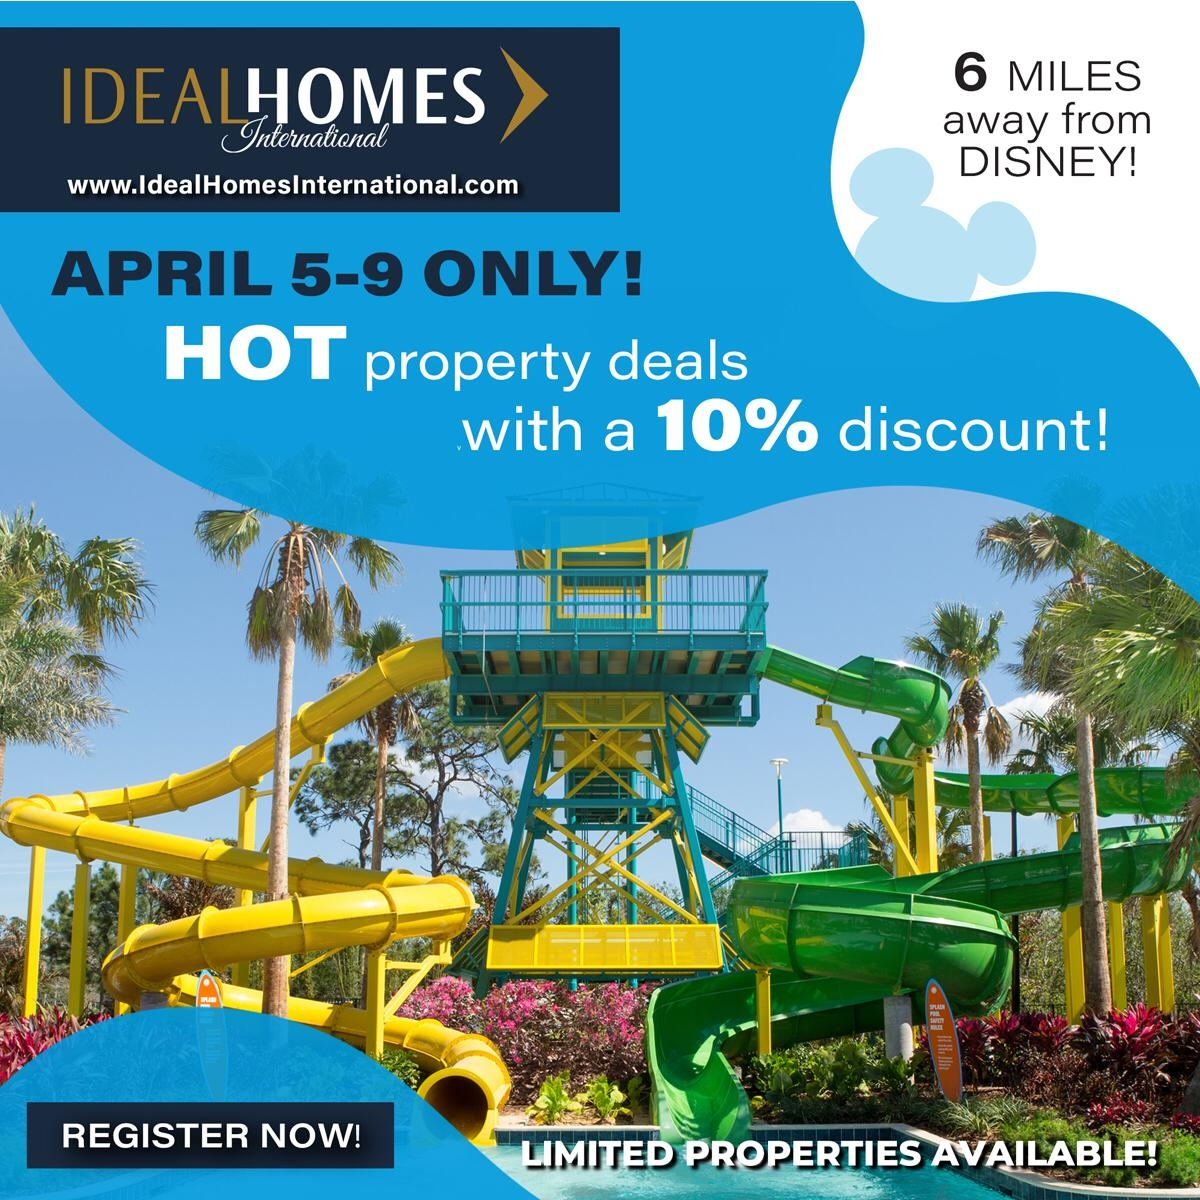 Ideal Homes International Offers Orlando Property investment Deals at A Special Discount